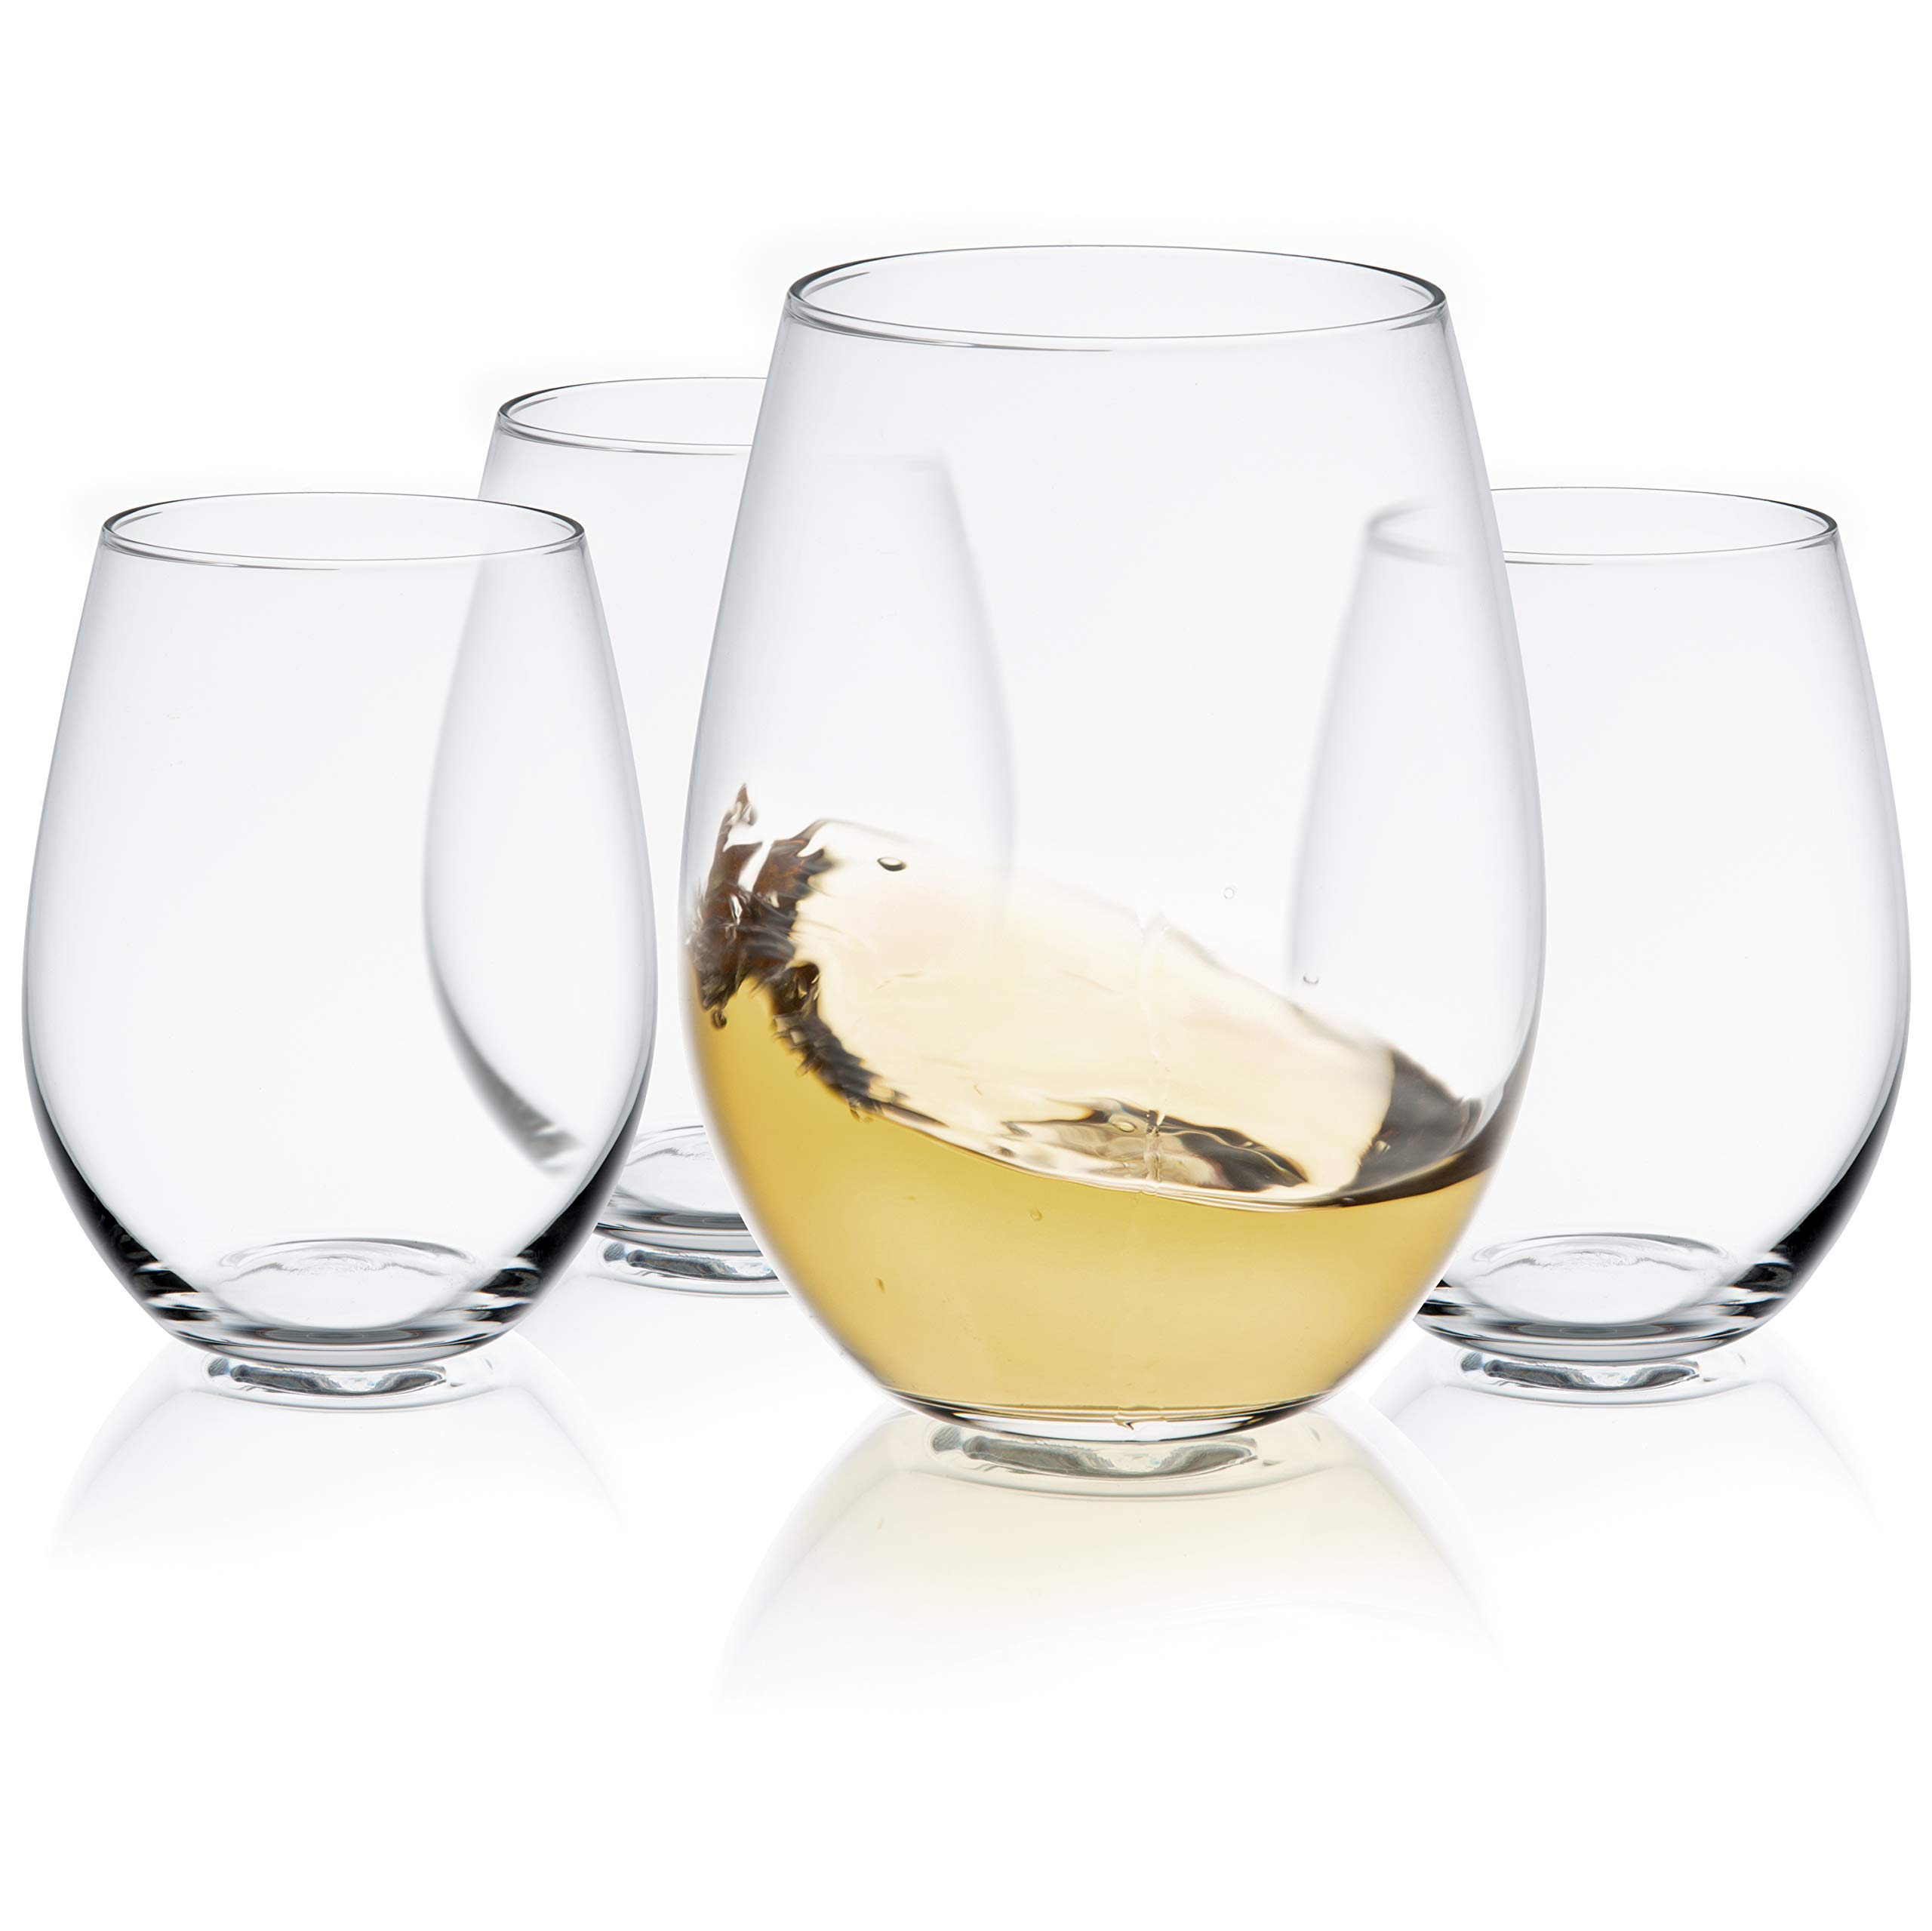 JoyJolt Spirits Stemless Wine Glasses for Red or White Wine (Set of 4)-19-Ounces by JoyJolt (Image #1)